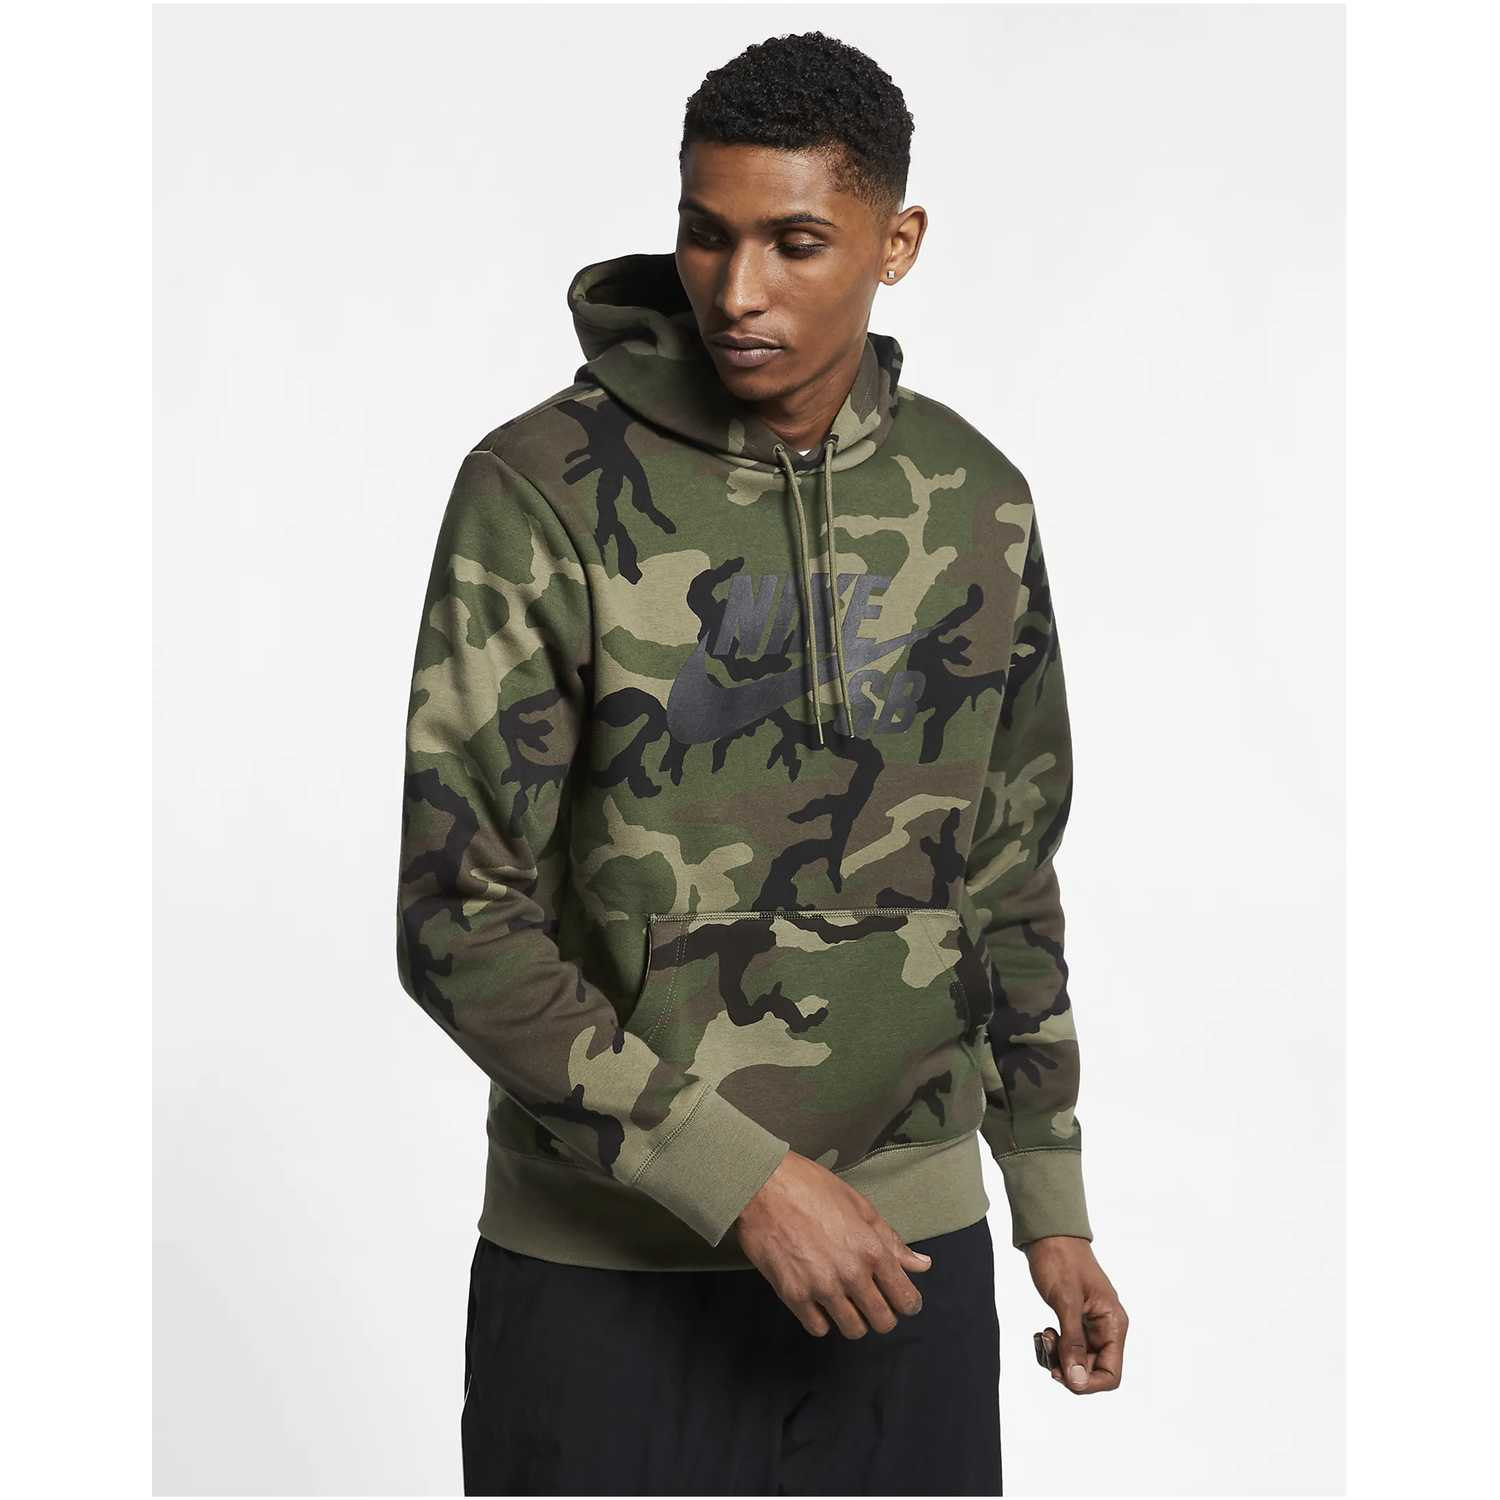 Nike m nk sb hoodie icon erdl Camuflado Hoodies y Sweaters Fashion